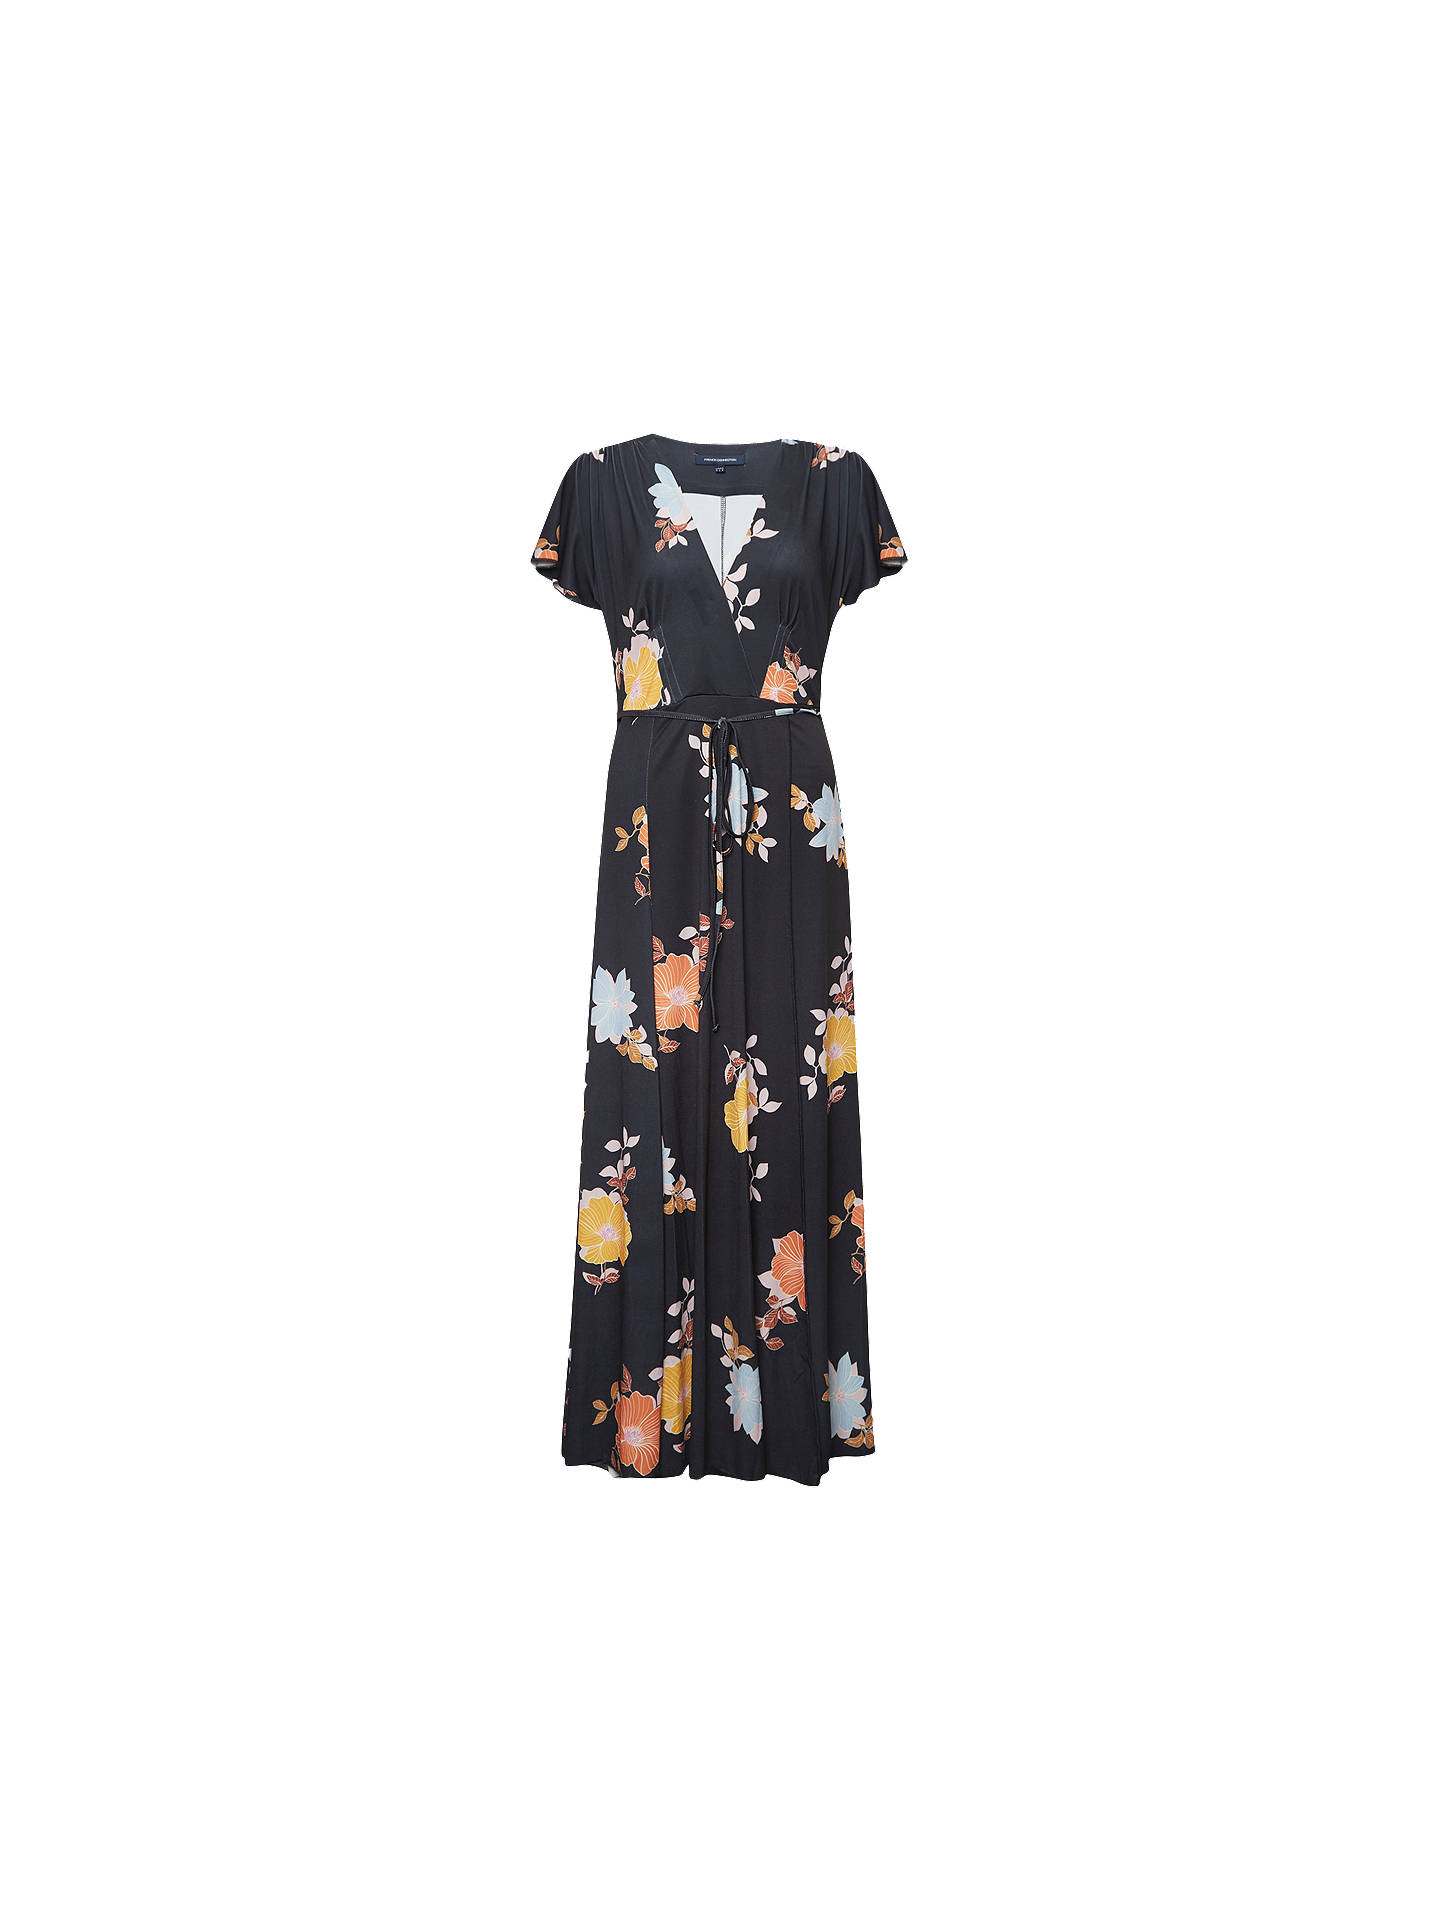 17c22b8d95a Buy French Connection Shikoku Jersey Dress, Black/Multi, 6 Online at  johnlewis.